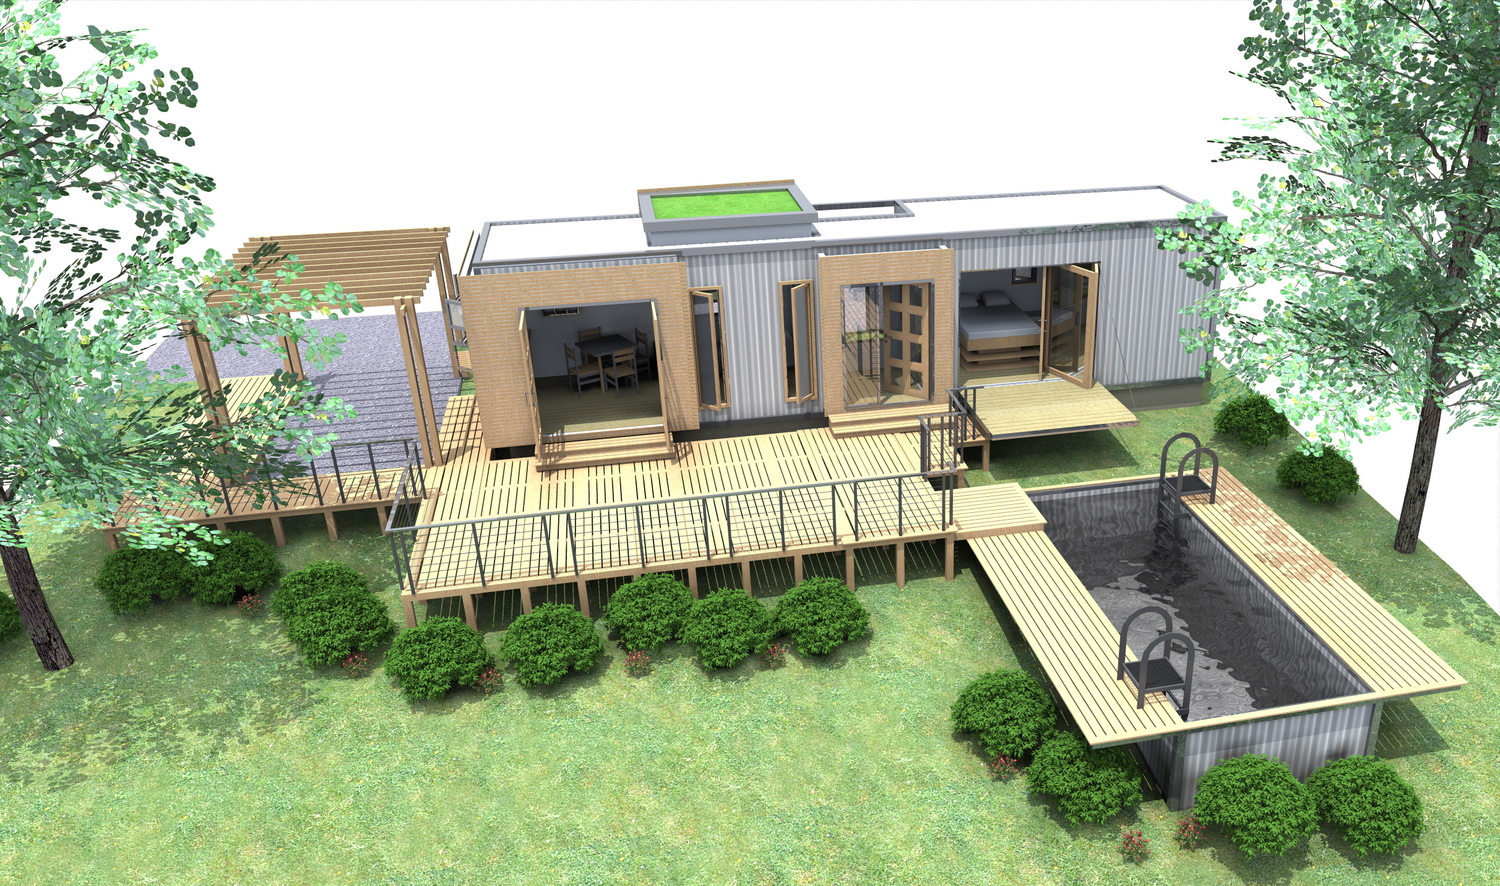 Shipping container homes 40ft shipping container home eco pig designs sch 1 devon uk - Ft container home ...